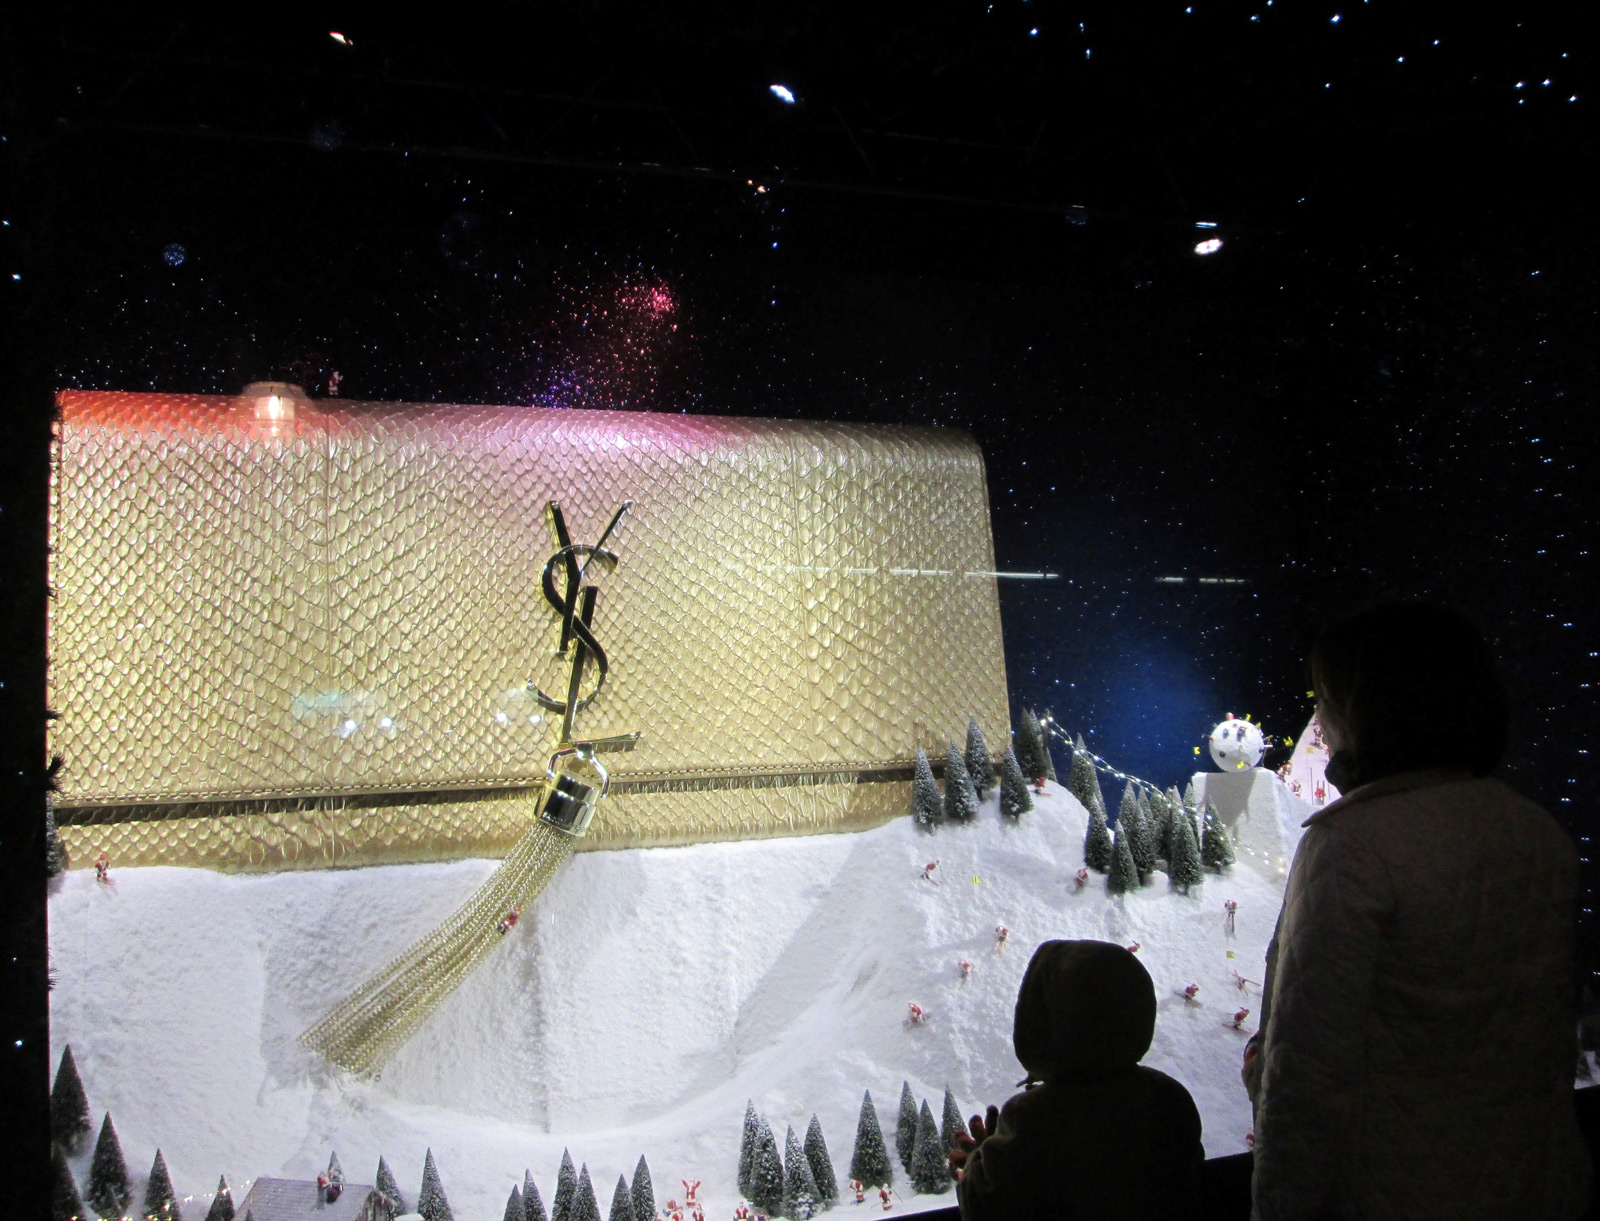 For sure one of the best winter window displays, a huge YSL purse placed on a hill of snow.